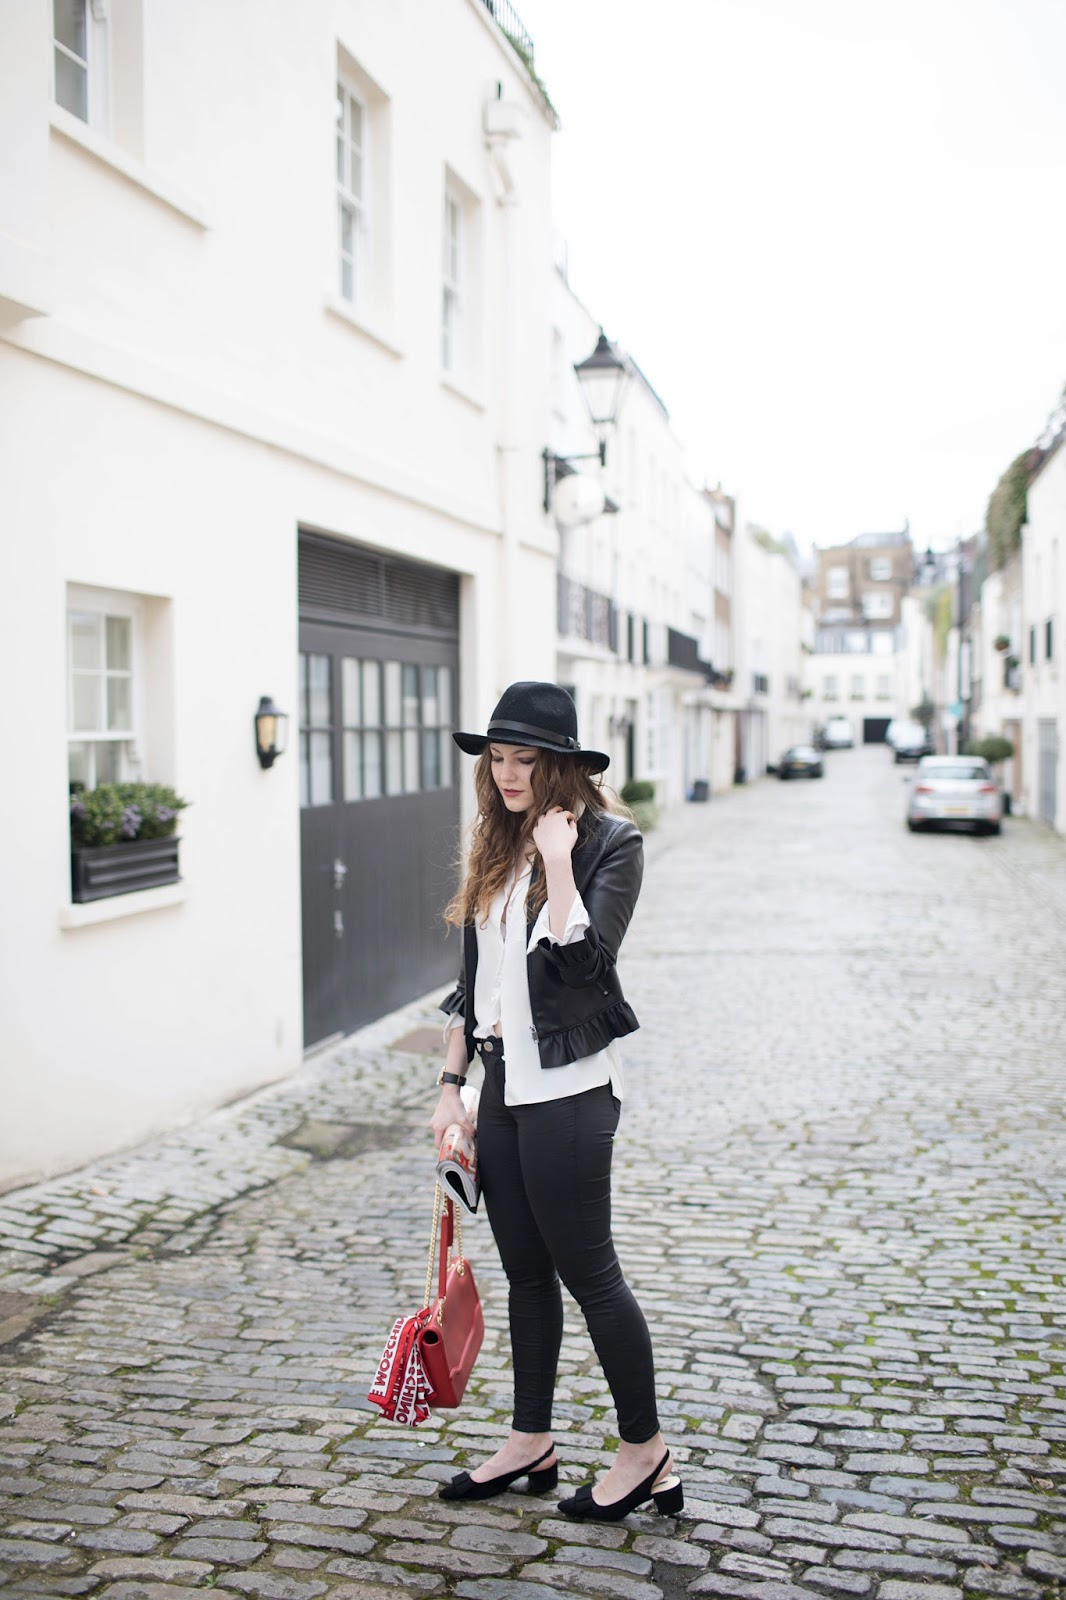 blogging 101, blogs about life, balance blogging and job, blogging job balance, work life balance, london based petite blogger, london based style blogger, london based fashion blogger